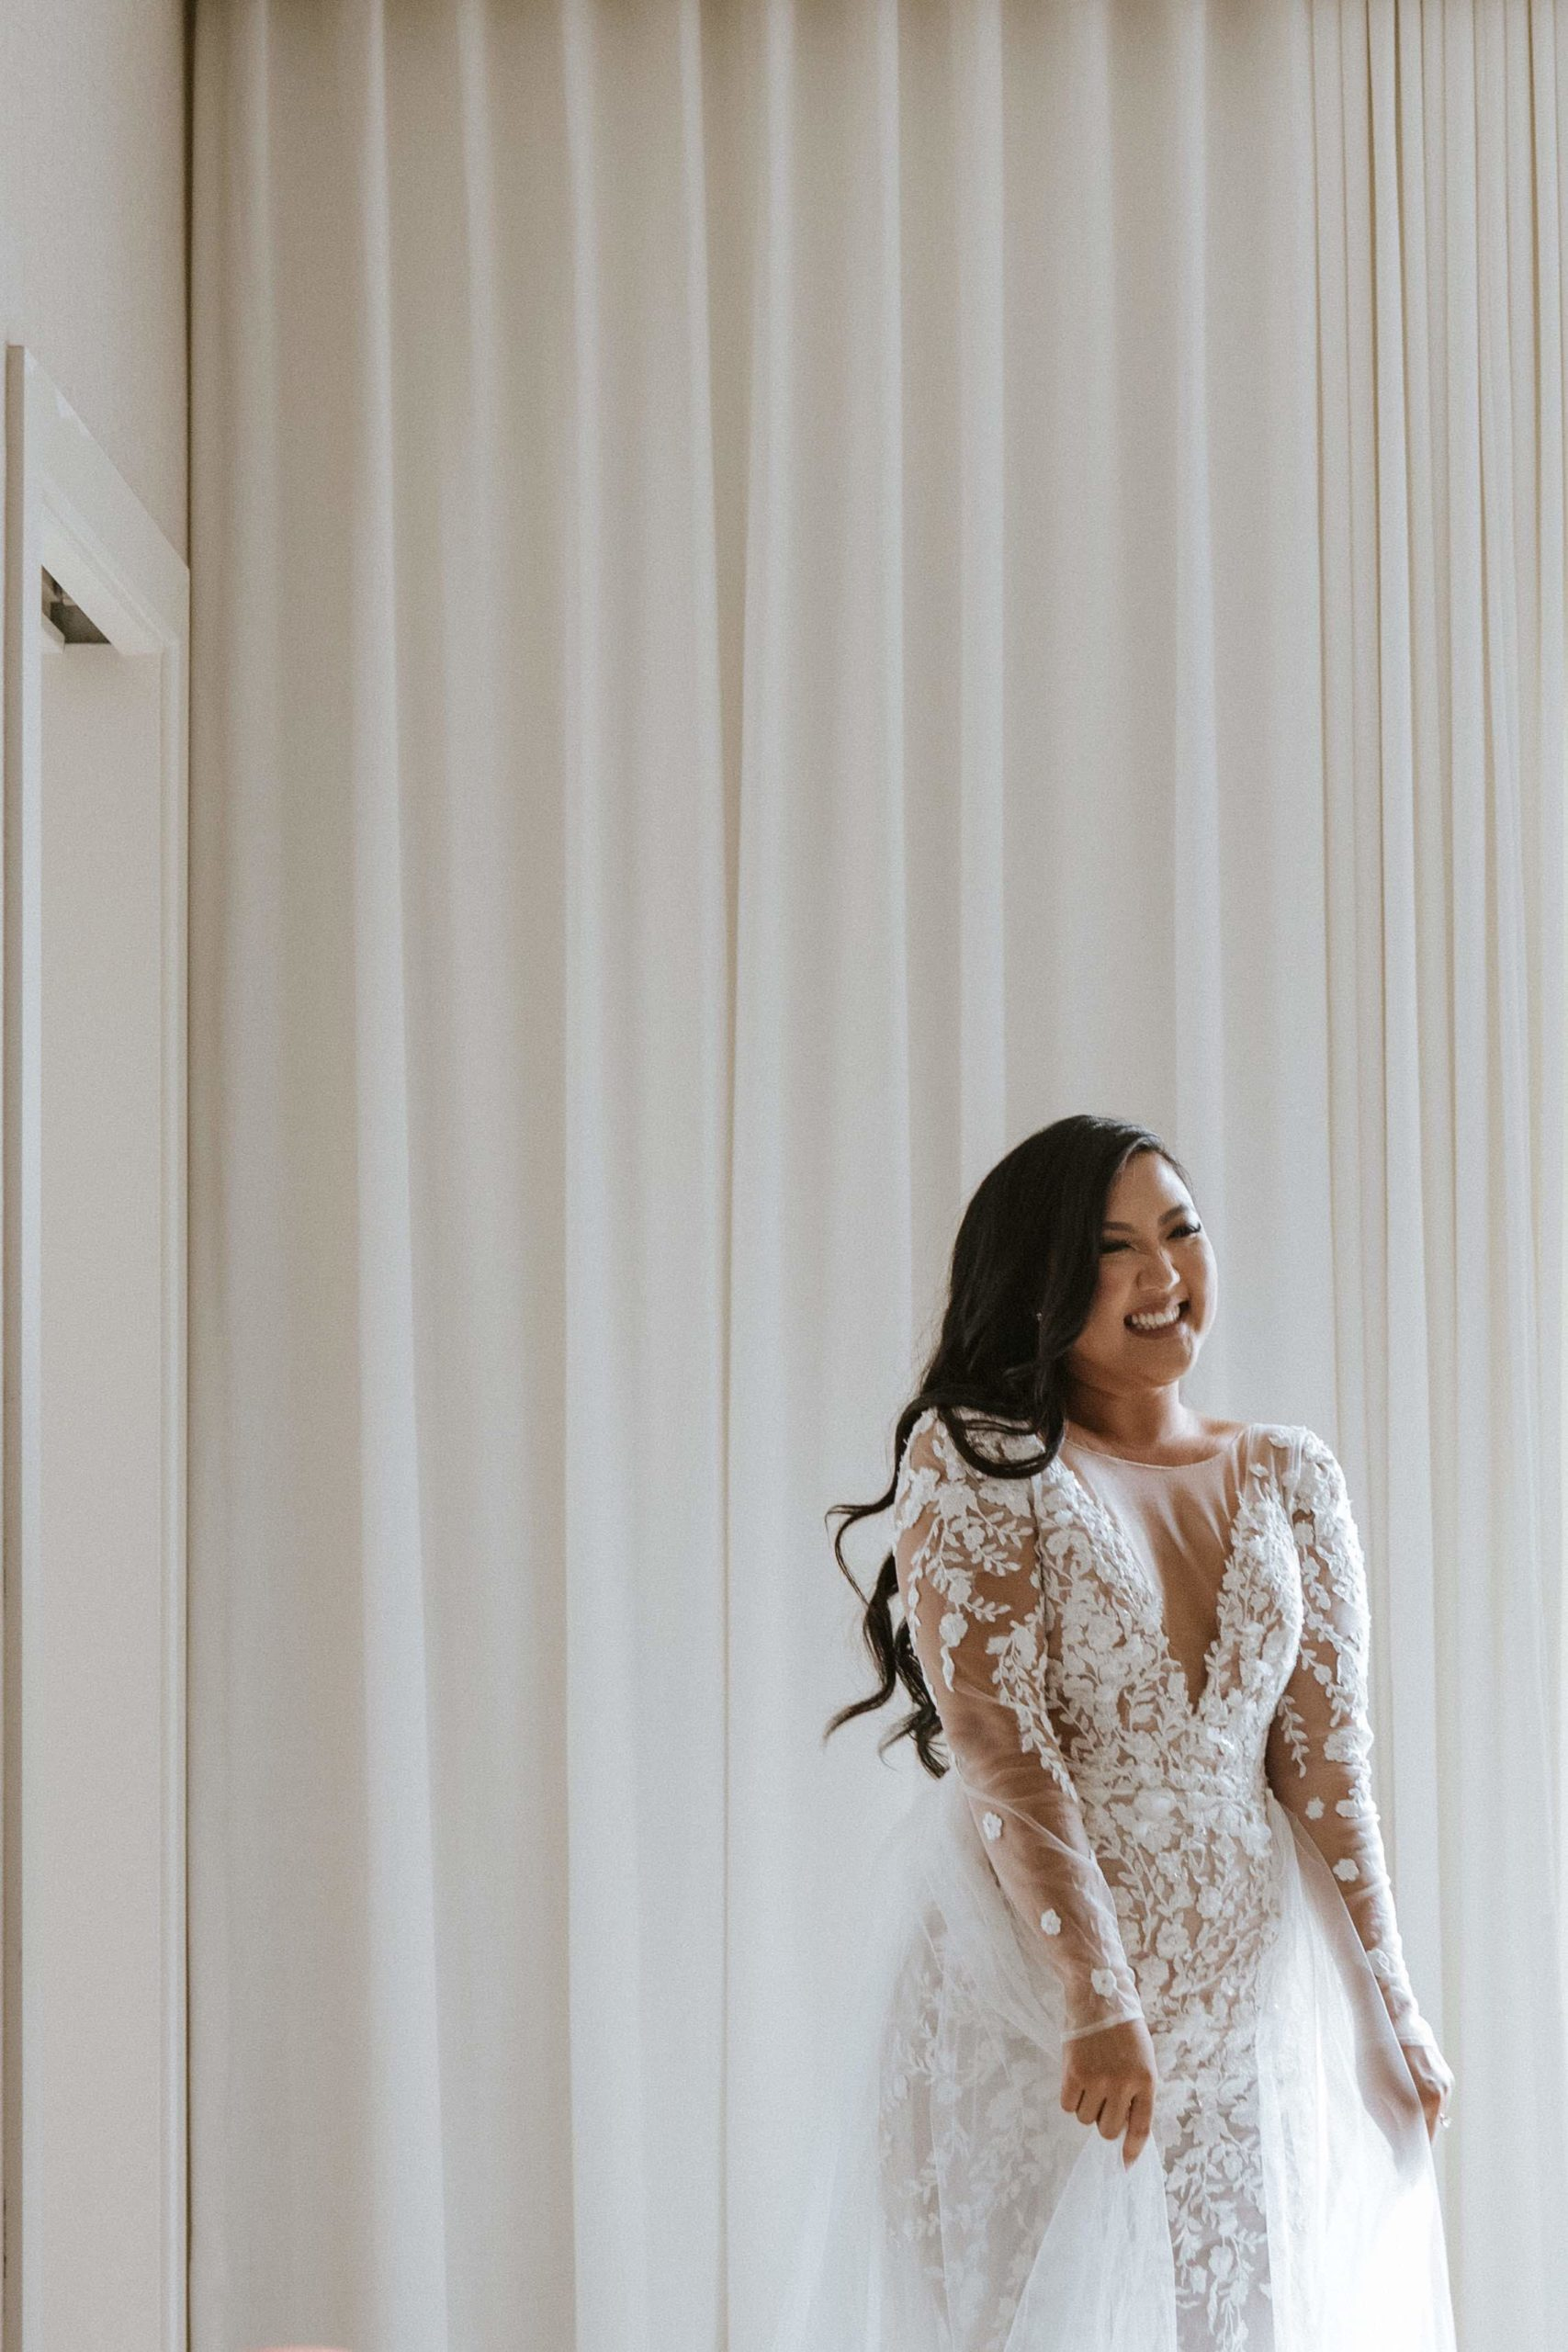 Solo shot of bride smiling in wedding dress